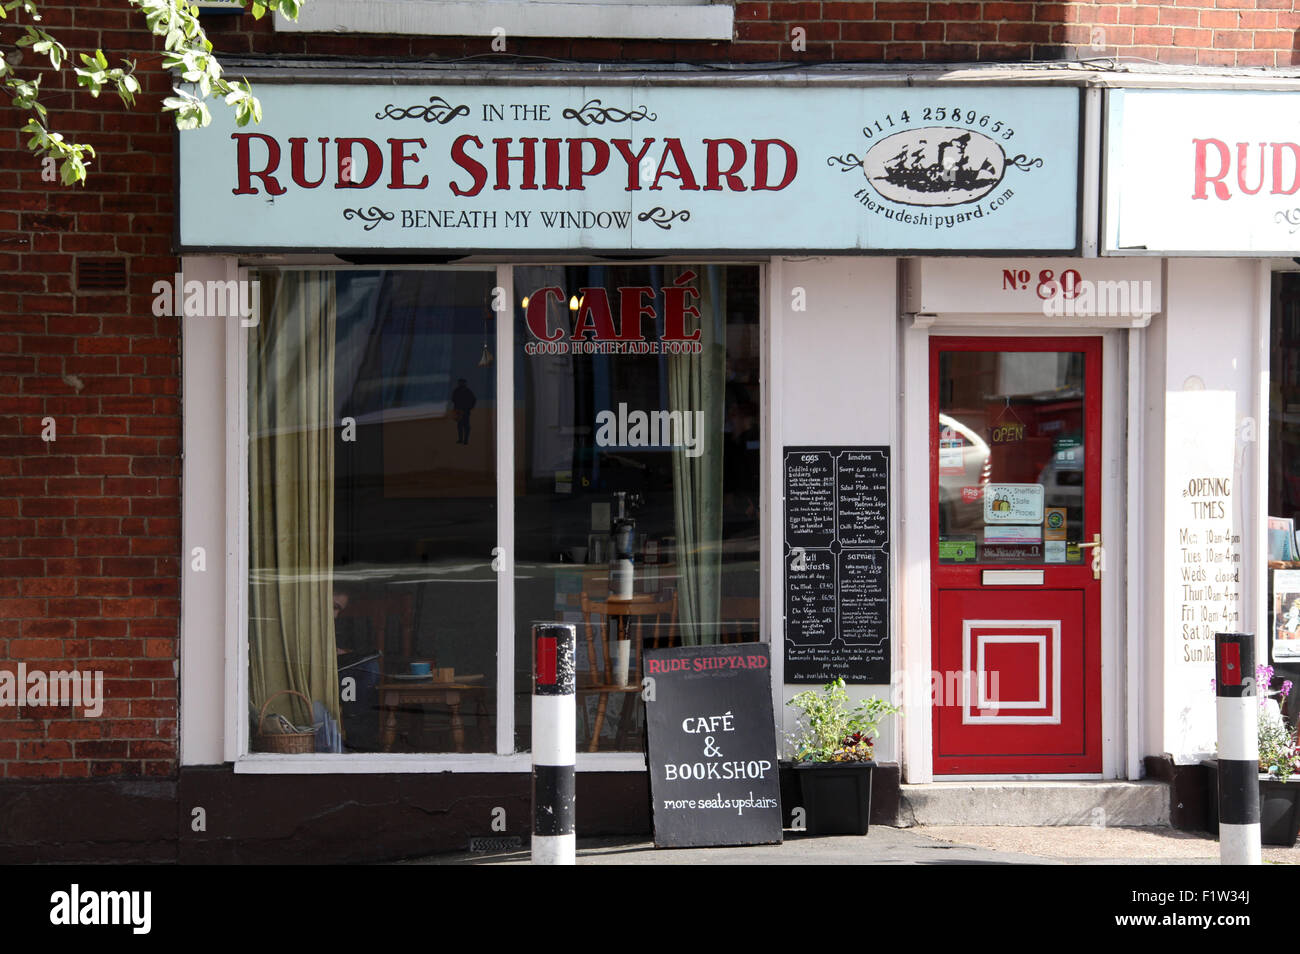 Rude Shipyard Cafe and Bookshop in Sheffield - Stock Image